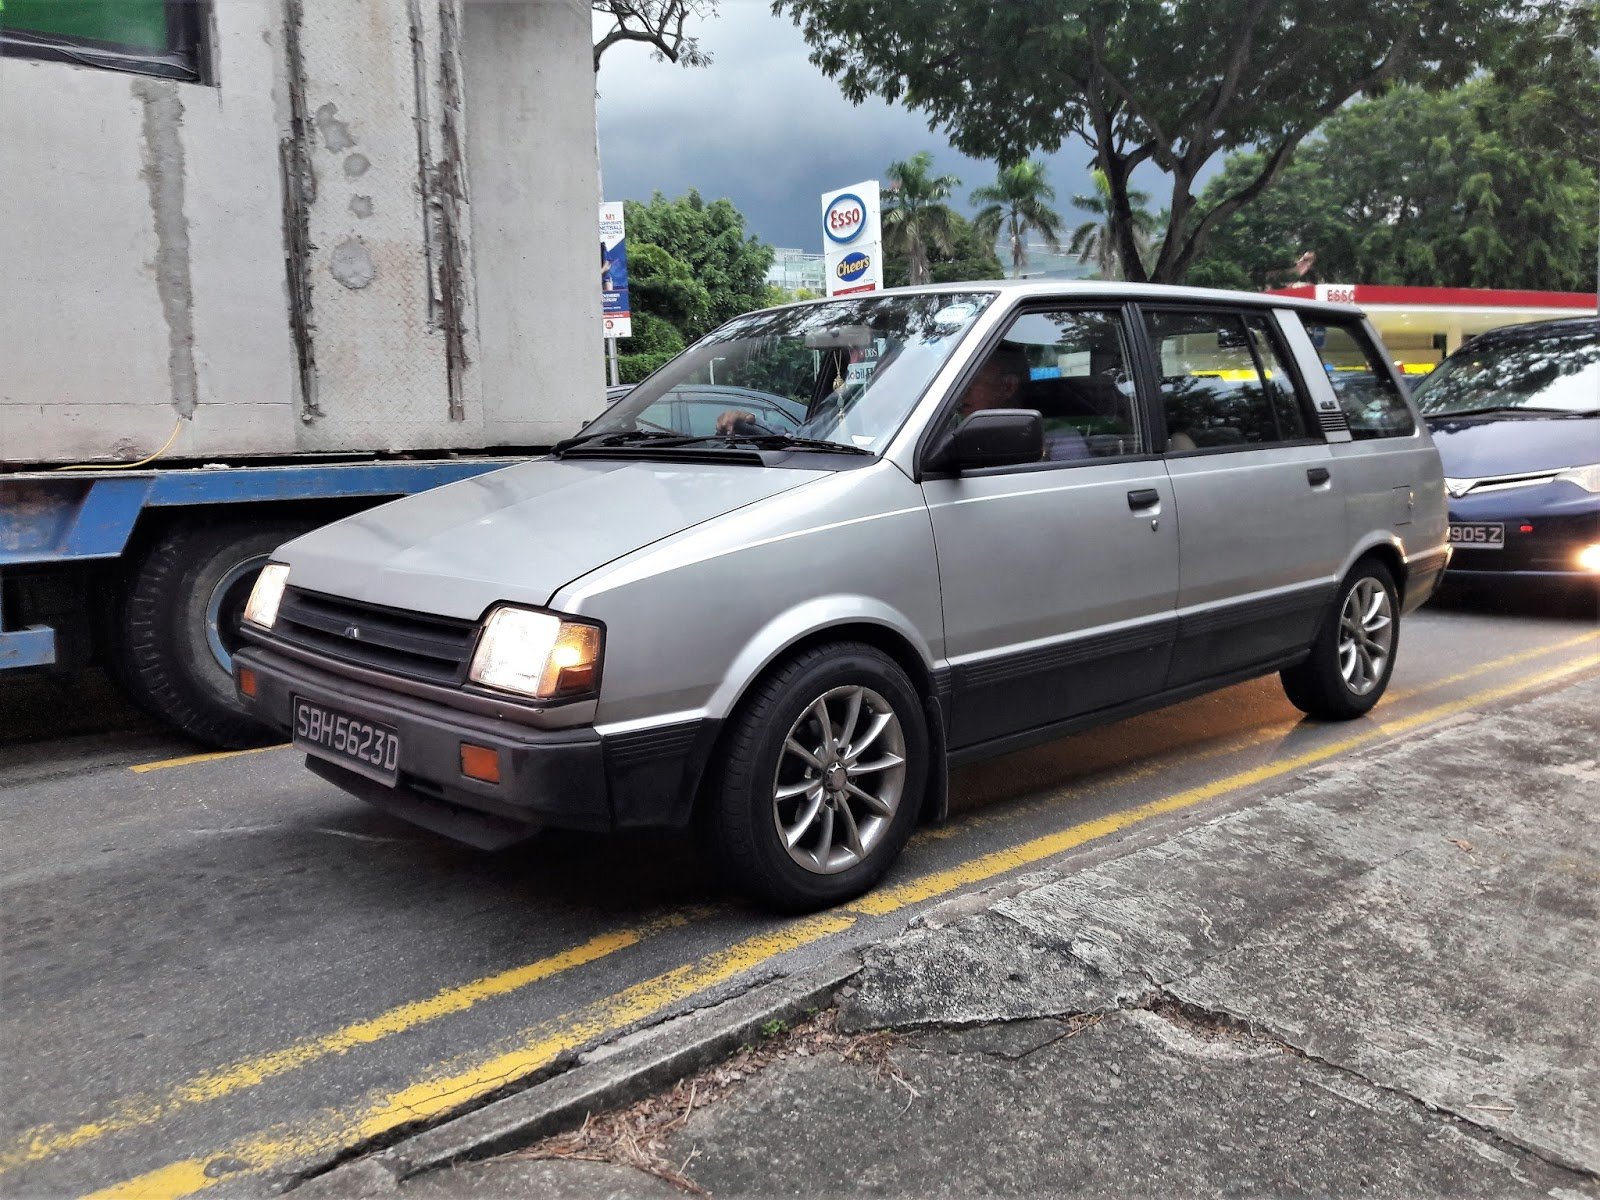 Singapore Vintage and Classic Cars: More than an old car #63 ...